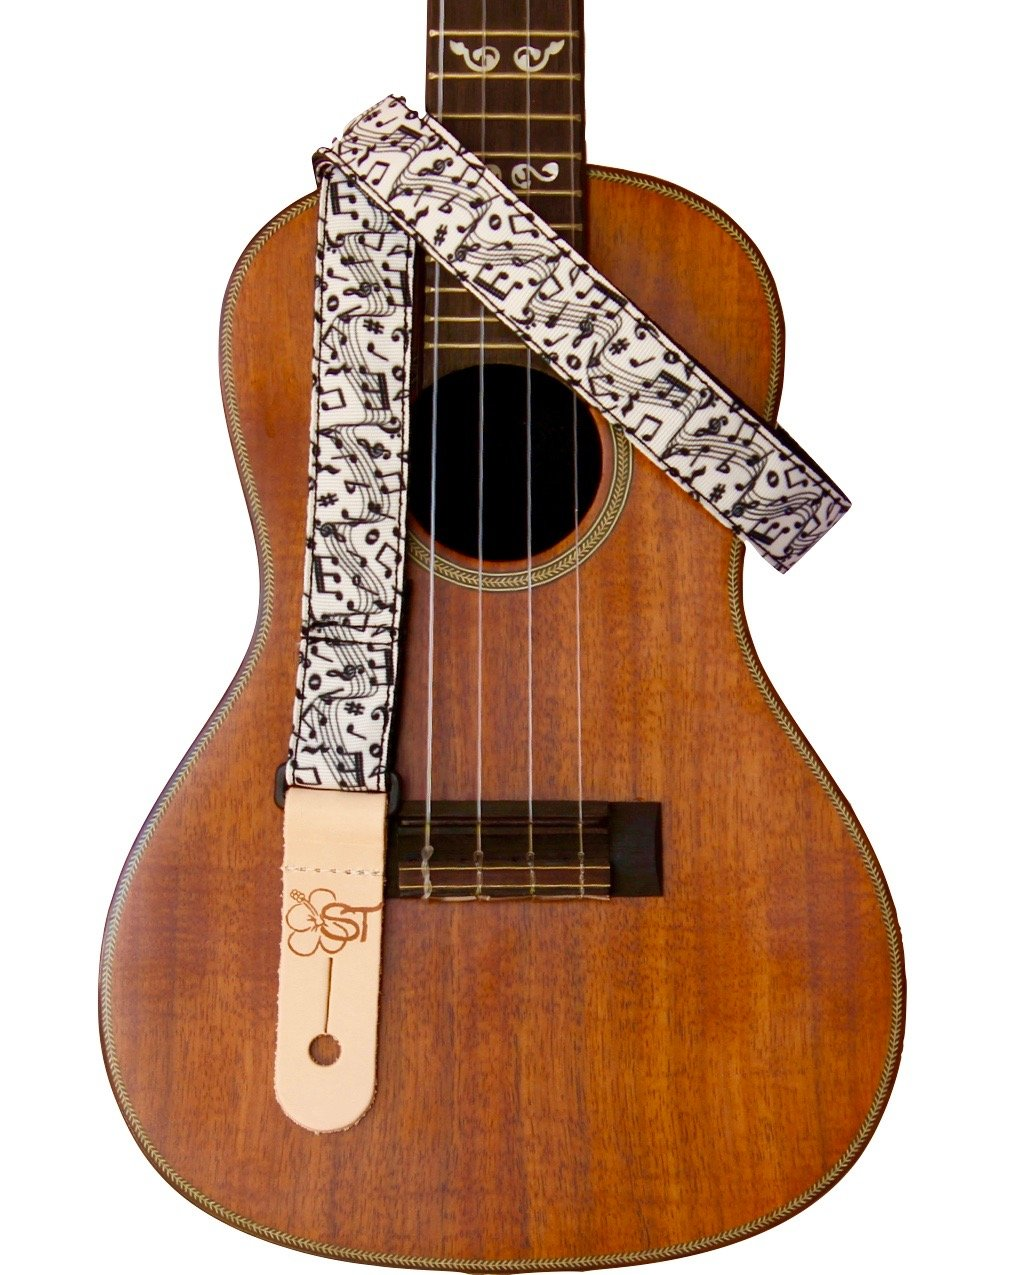 Sherrin's Threads 1 Ukulele Strap - Music Notes